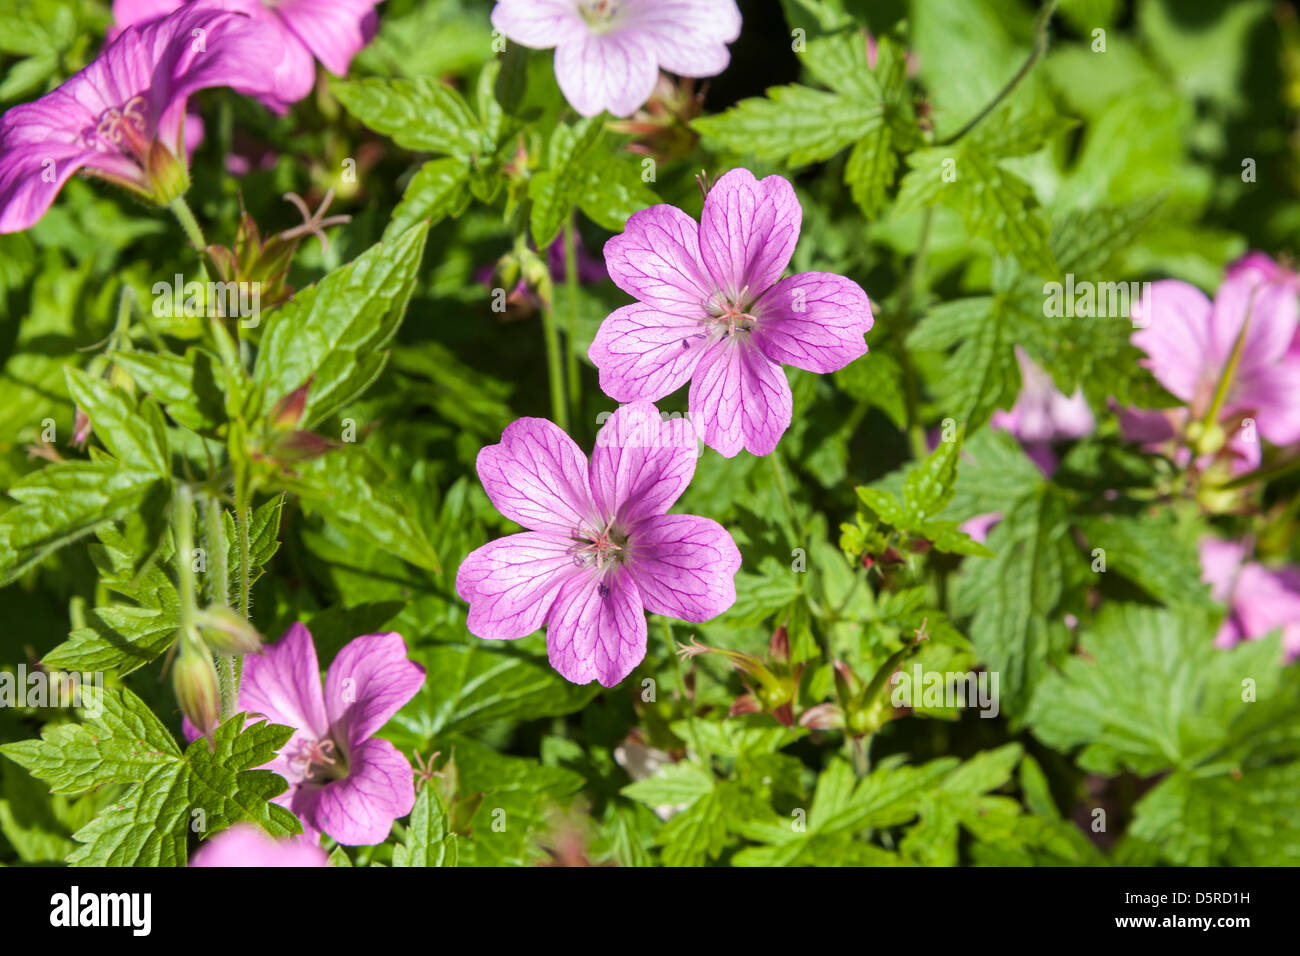 GERANIUM FLOWERS IN DOMESTIC GARDEN UK Stock Photo